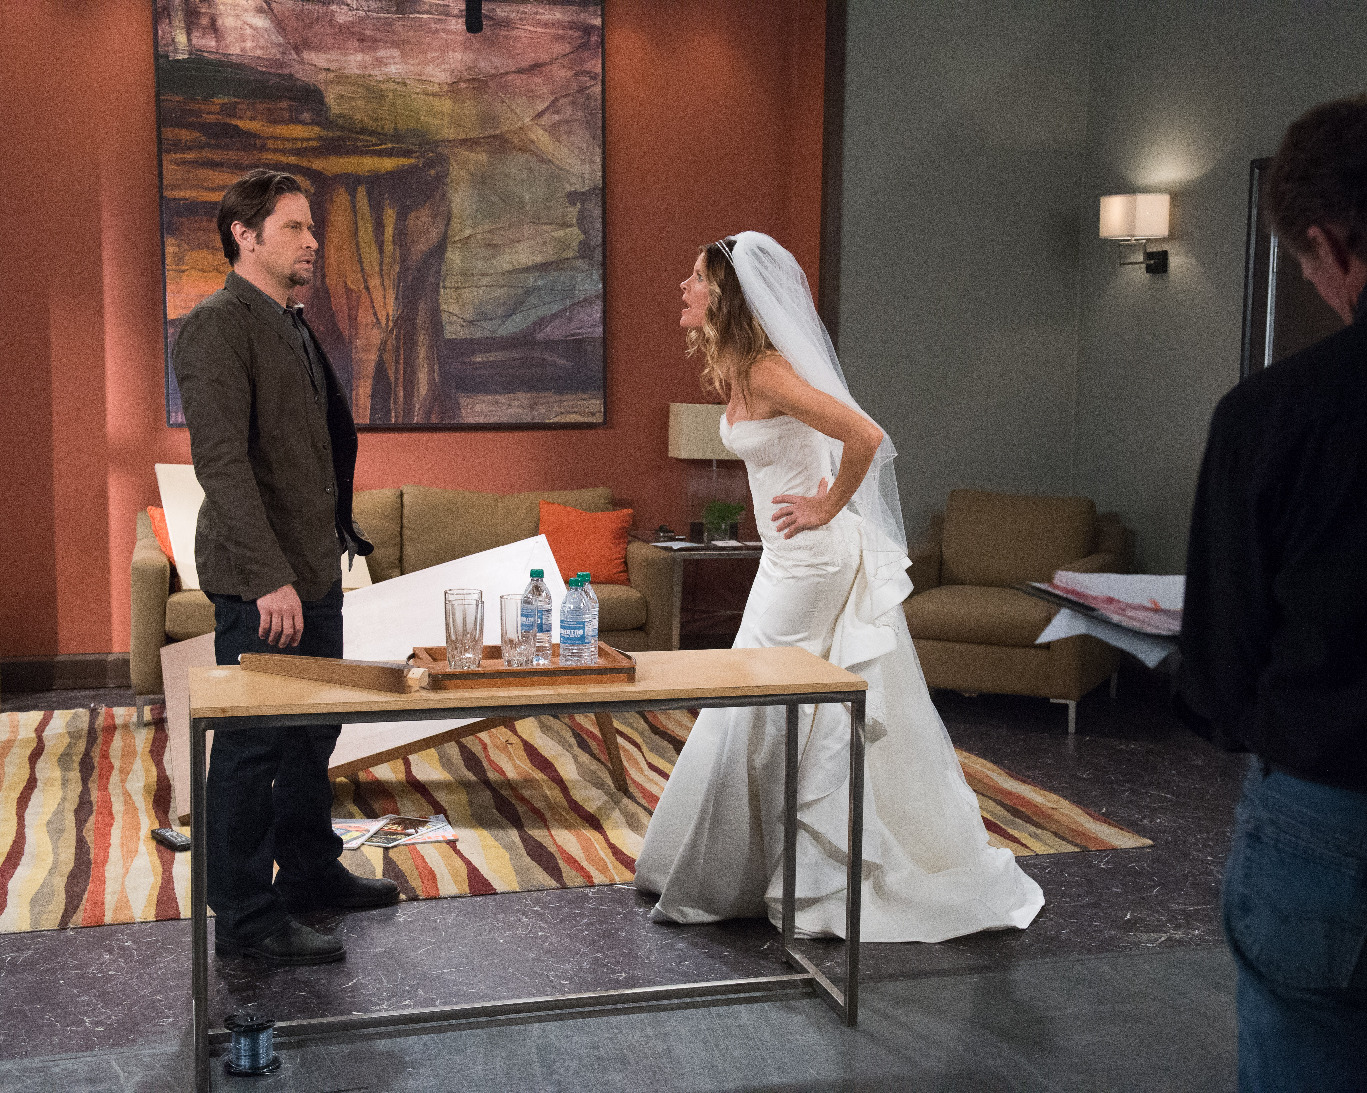 """GENERAL HOSPITAL - On Friday, May 15, 2015 and Monday, May 18, 2015, ABC unveils a two-day network daytime television event when """"General Hospital"""" broadcasts LIVE from The ABC Prospect Studios in Hollywood. """"GH"""" fans can take part in the conversation by using #GHLive.  """"General Hospital"""" airs Monday-Friday  (3:00 p.m. - 4:00 p.m., ET) on the ABC Television Network.   (ABC/Matt Petit)  ROGER HOWARTH, MICHELLE STAFFORD"""